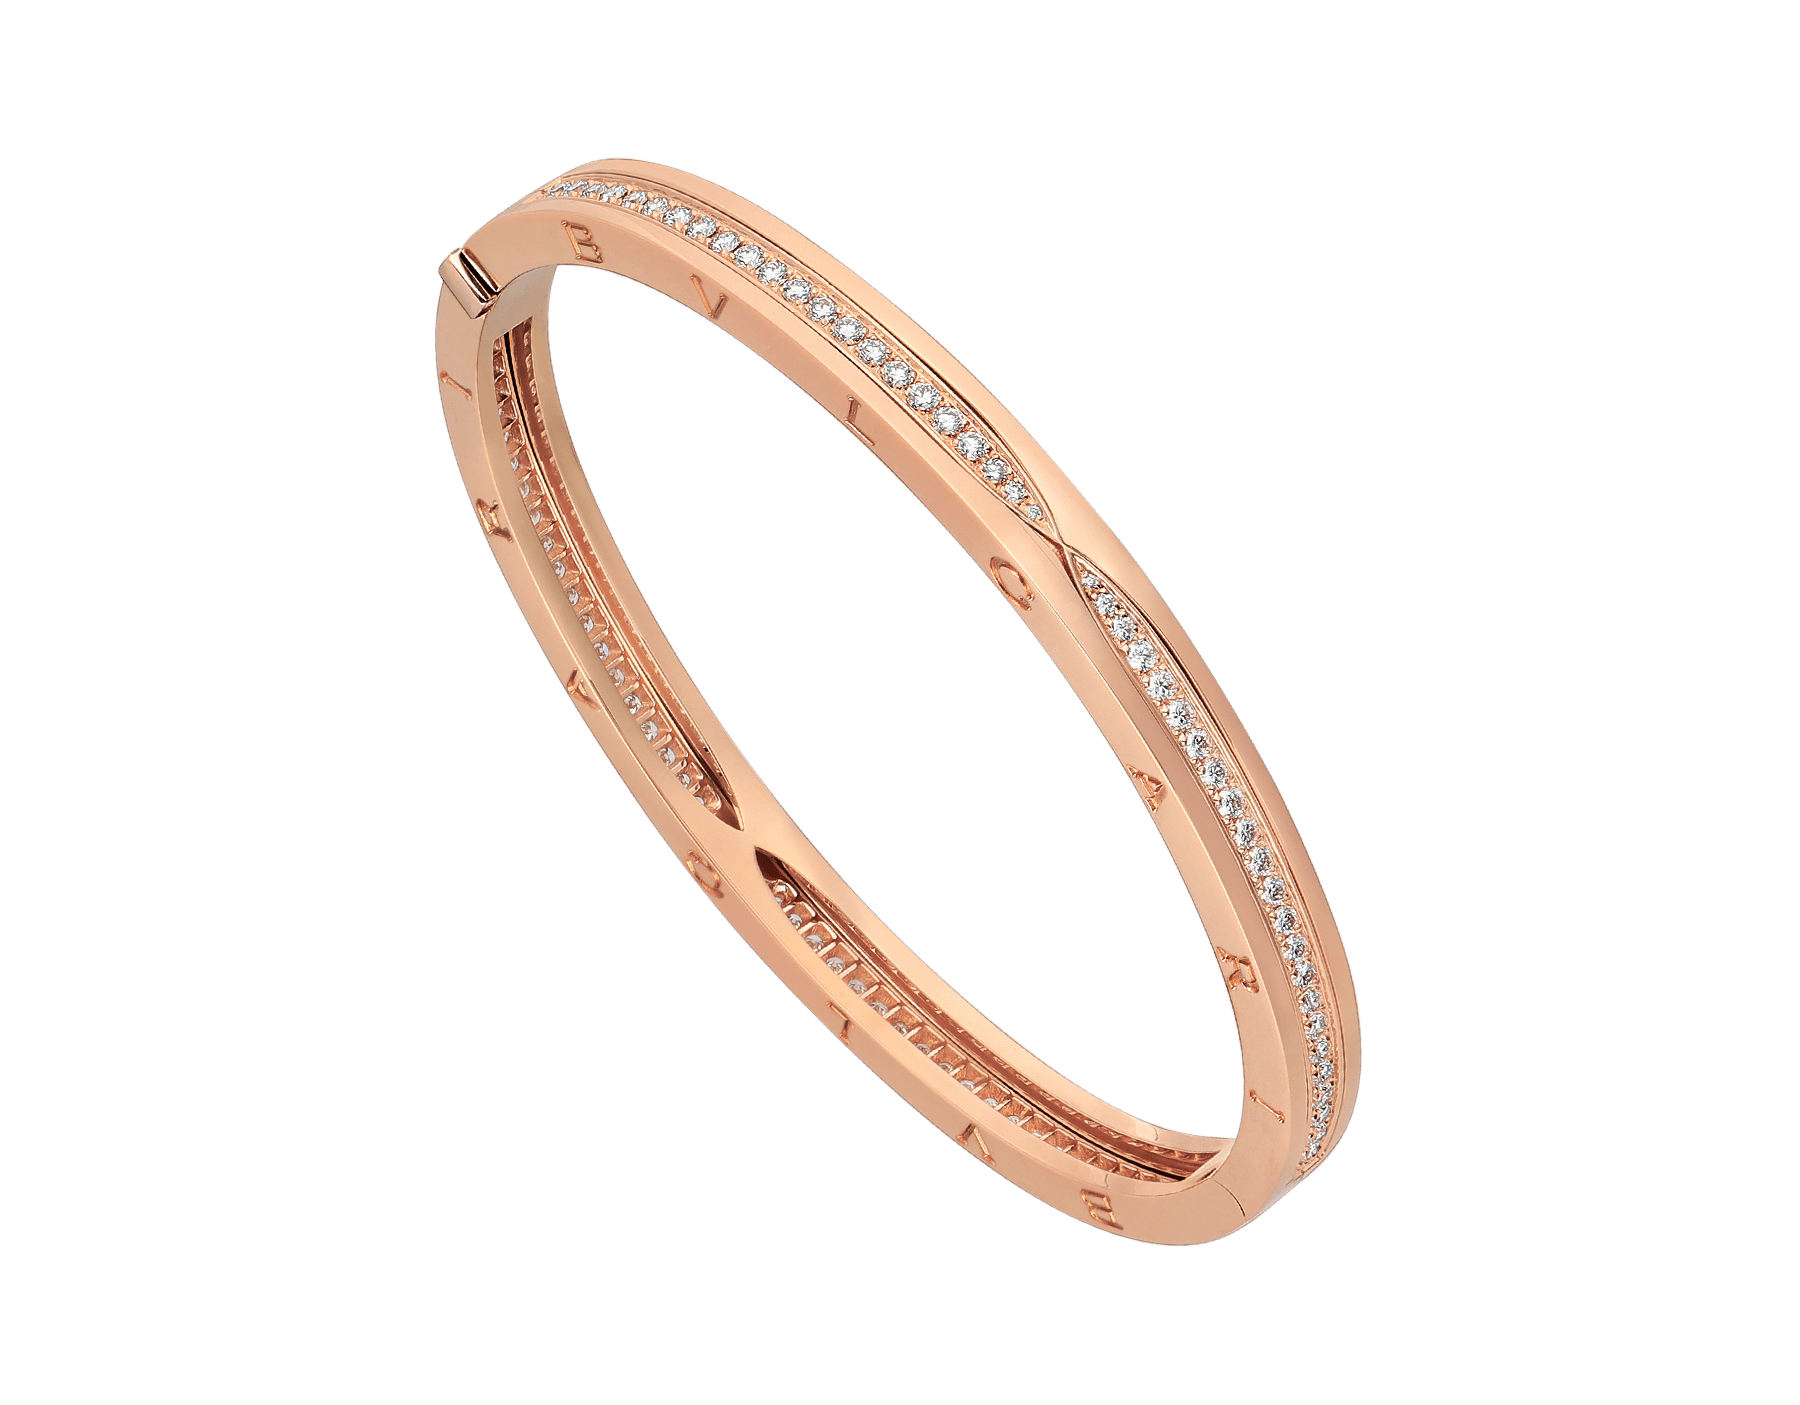 B.zero1 bangle bracelet in 18 kt rose gold, set with pavé diamonds on the spiral. BR857372 image 1